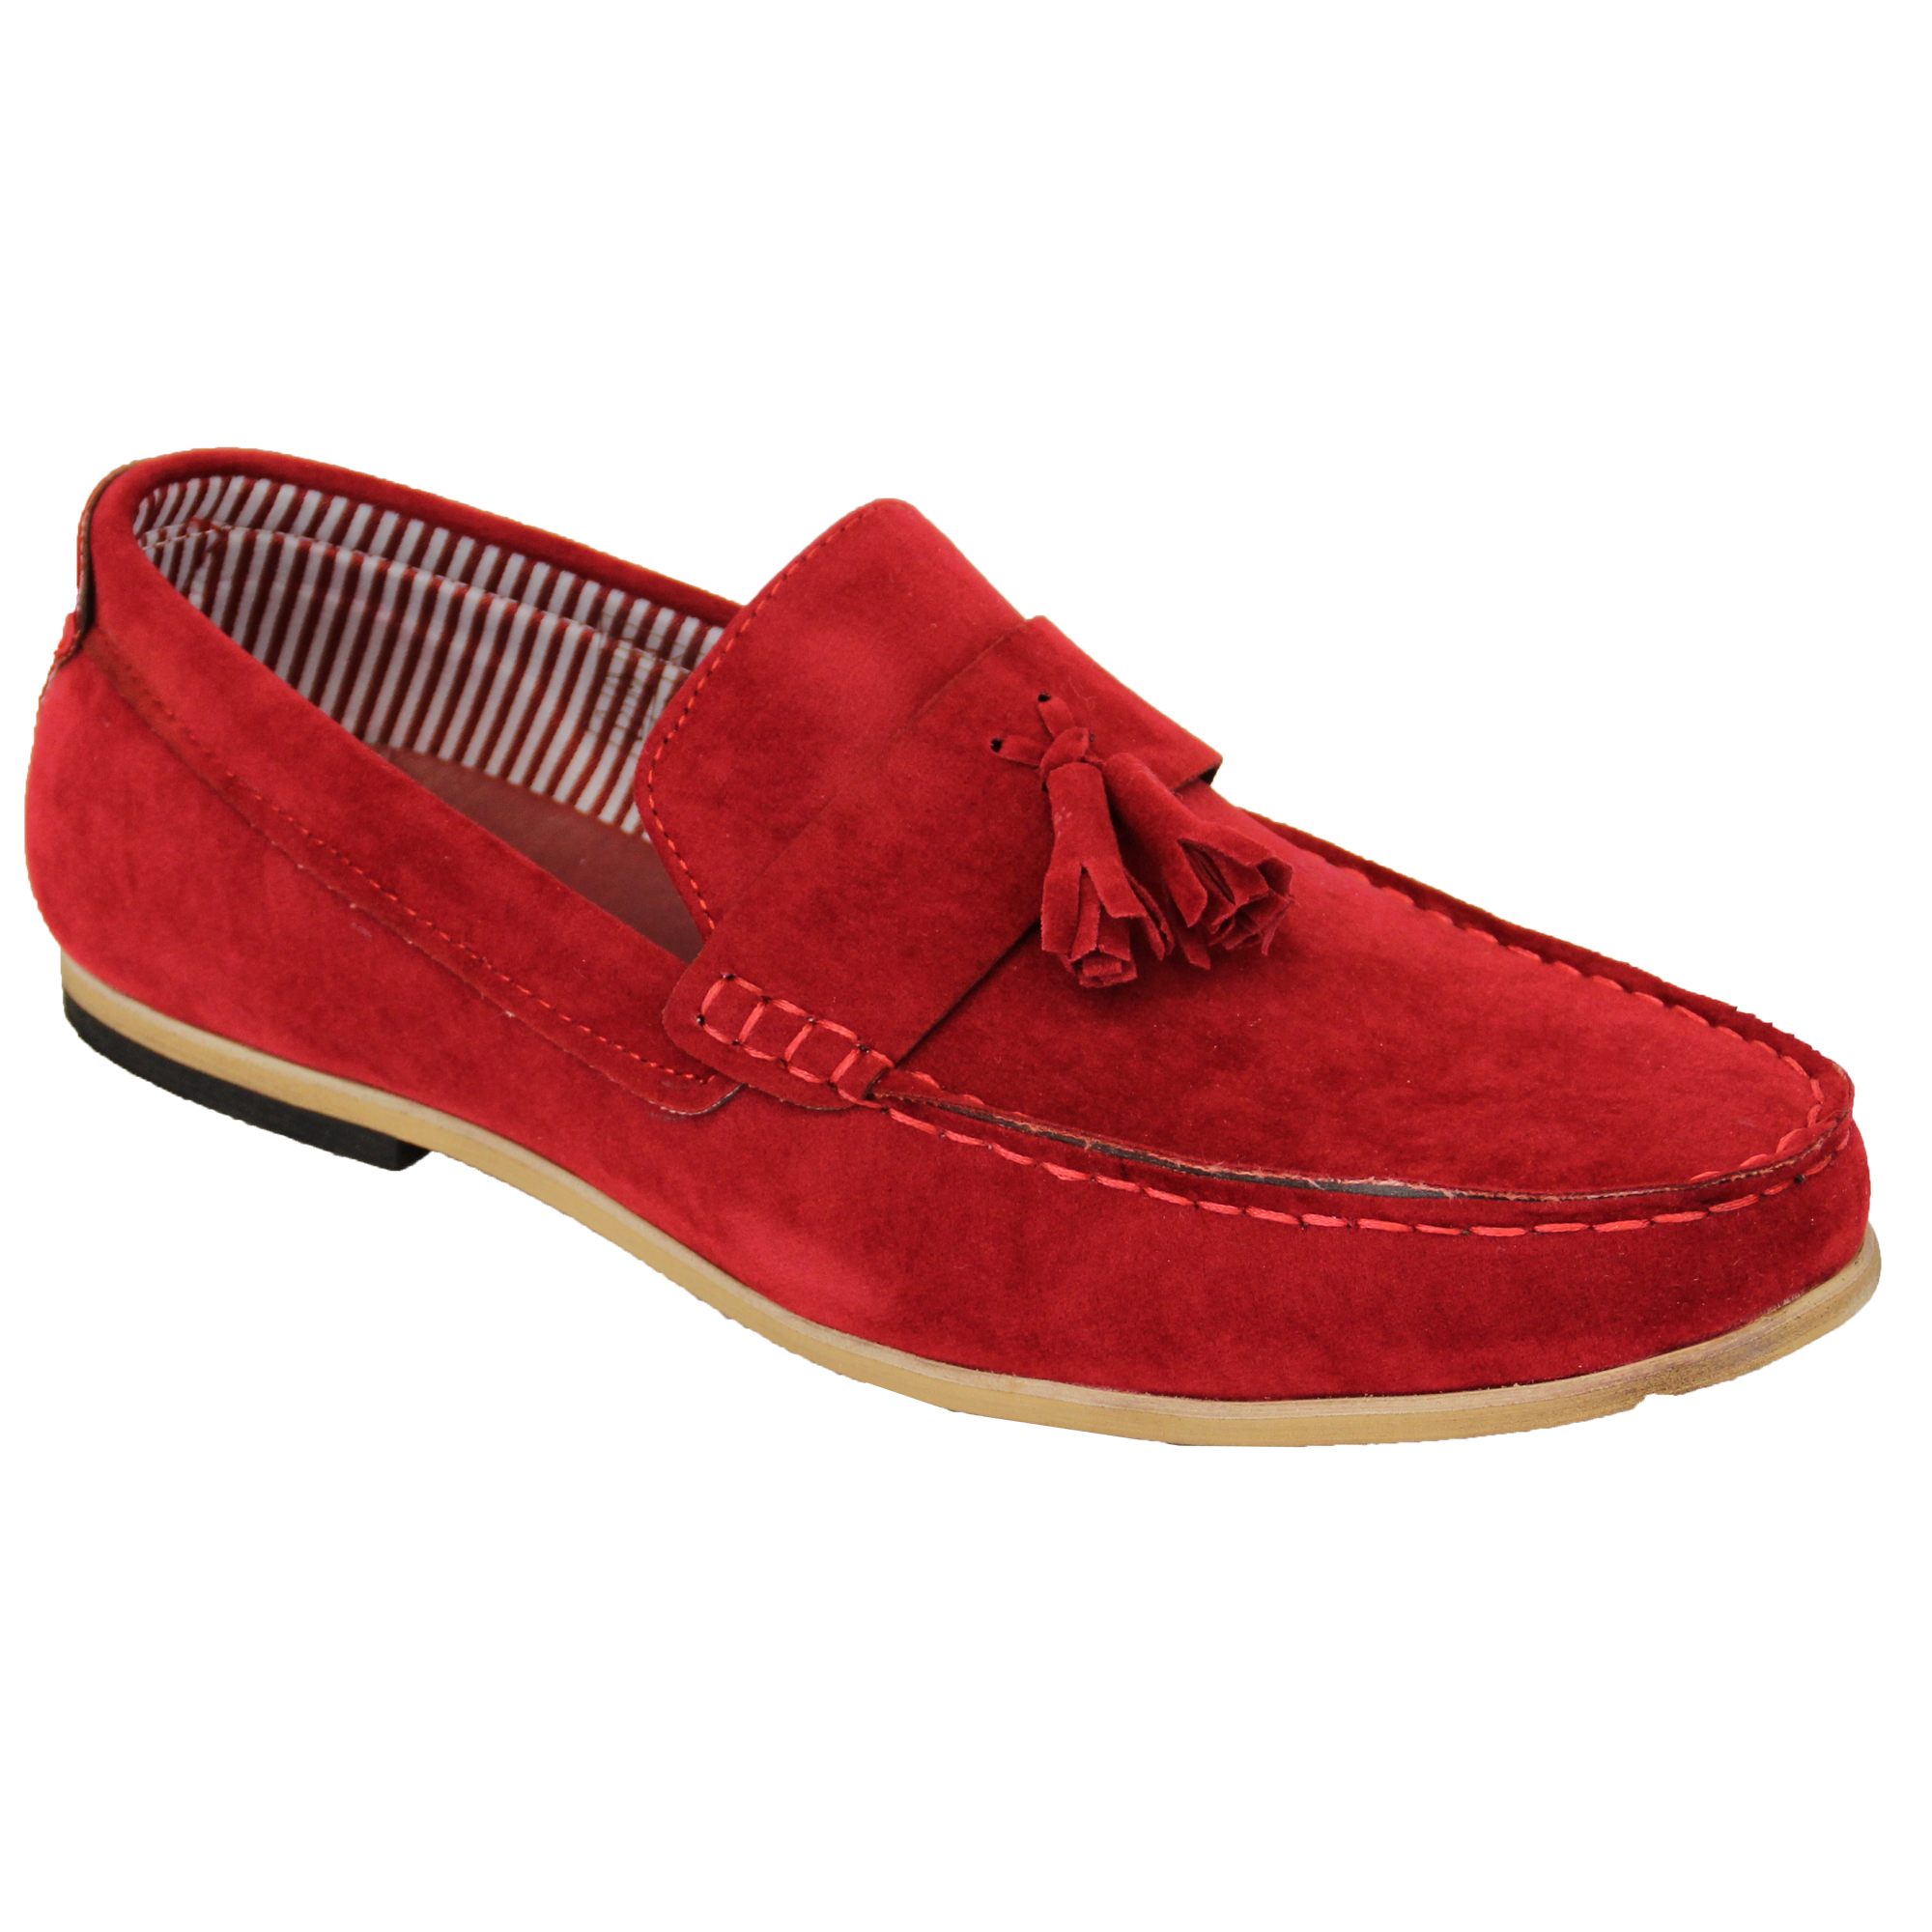 mens moccasins suede look loafers slip on boat shoes by gio gino ebay